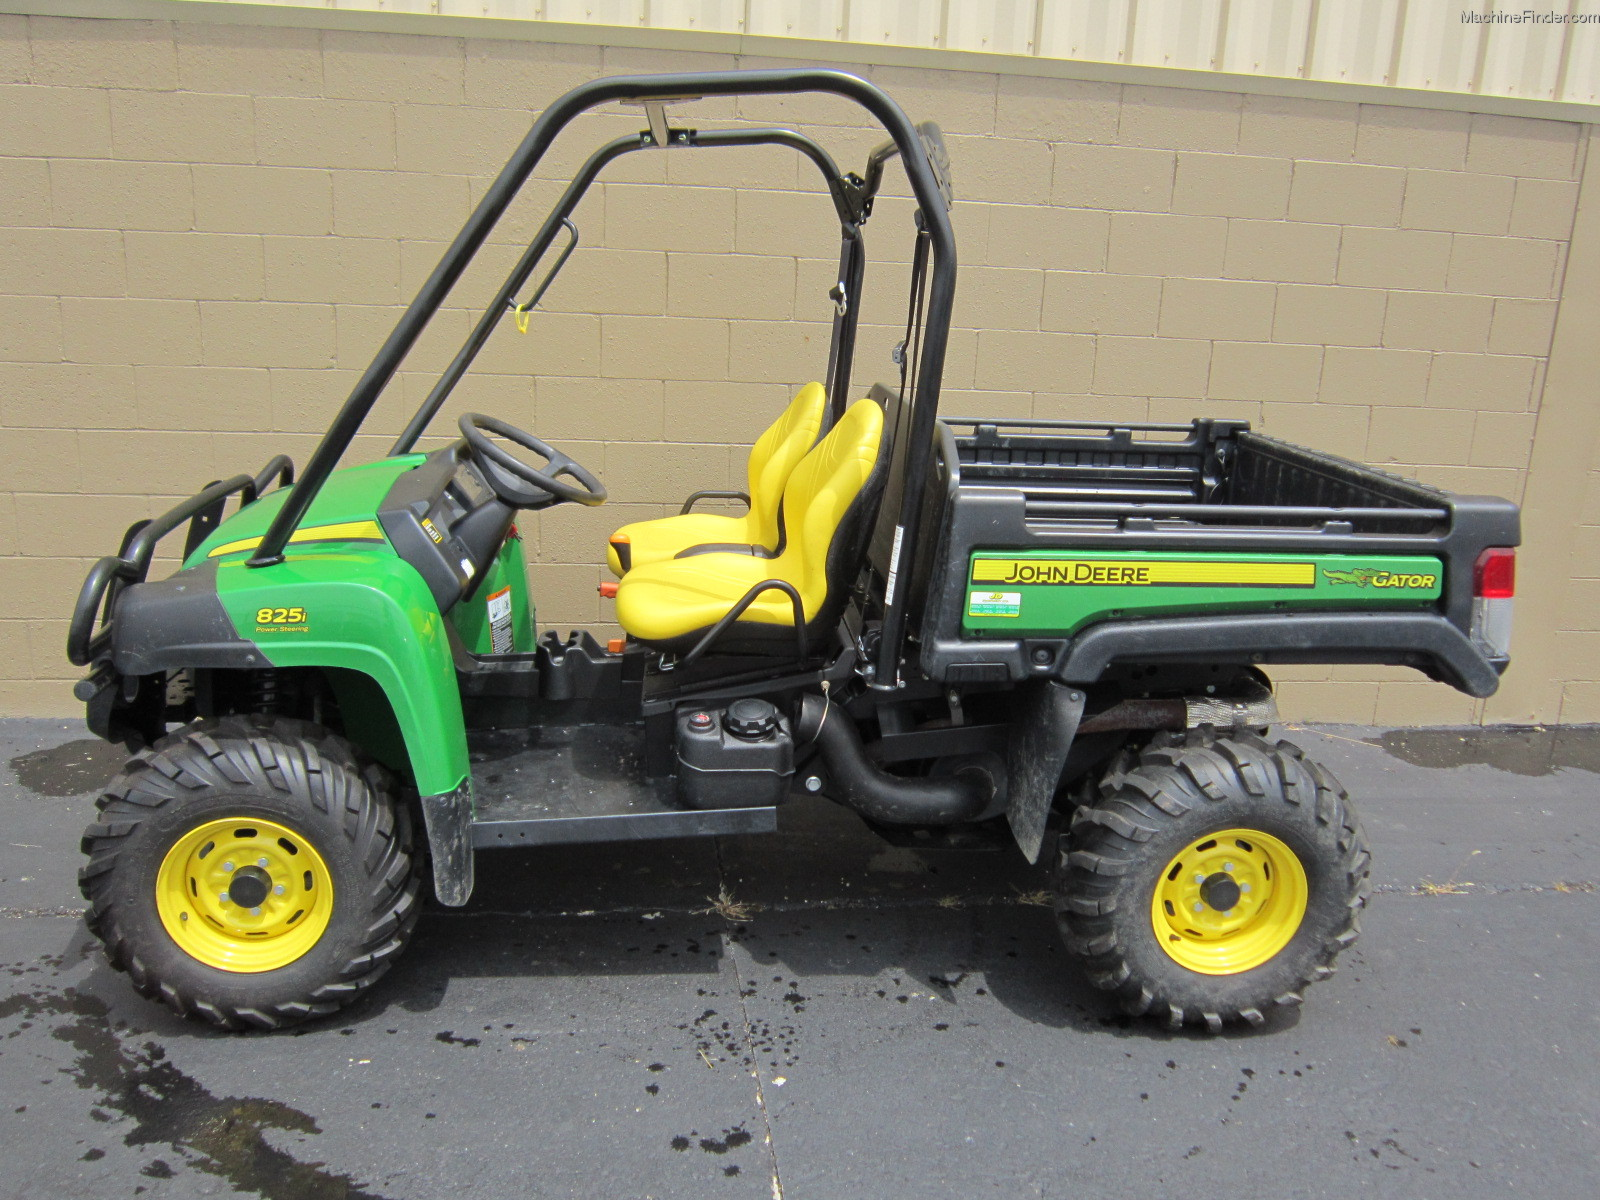 2012 John Deere 825I POWER STEERING ATV's and Gators - John Deere ...